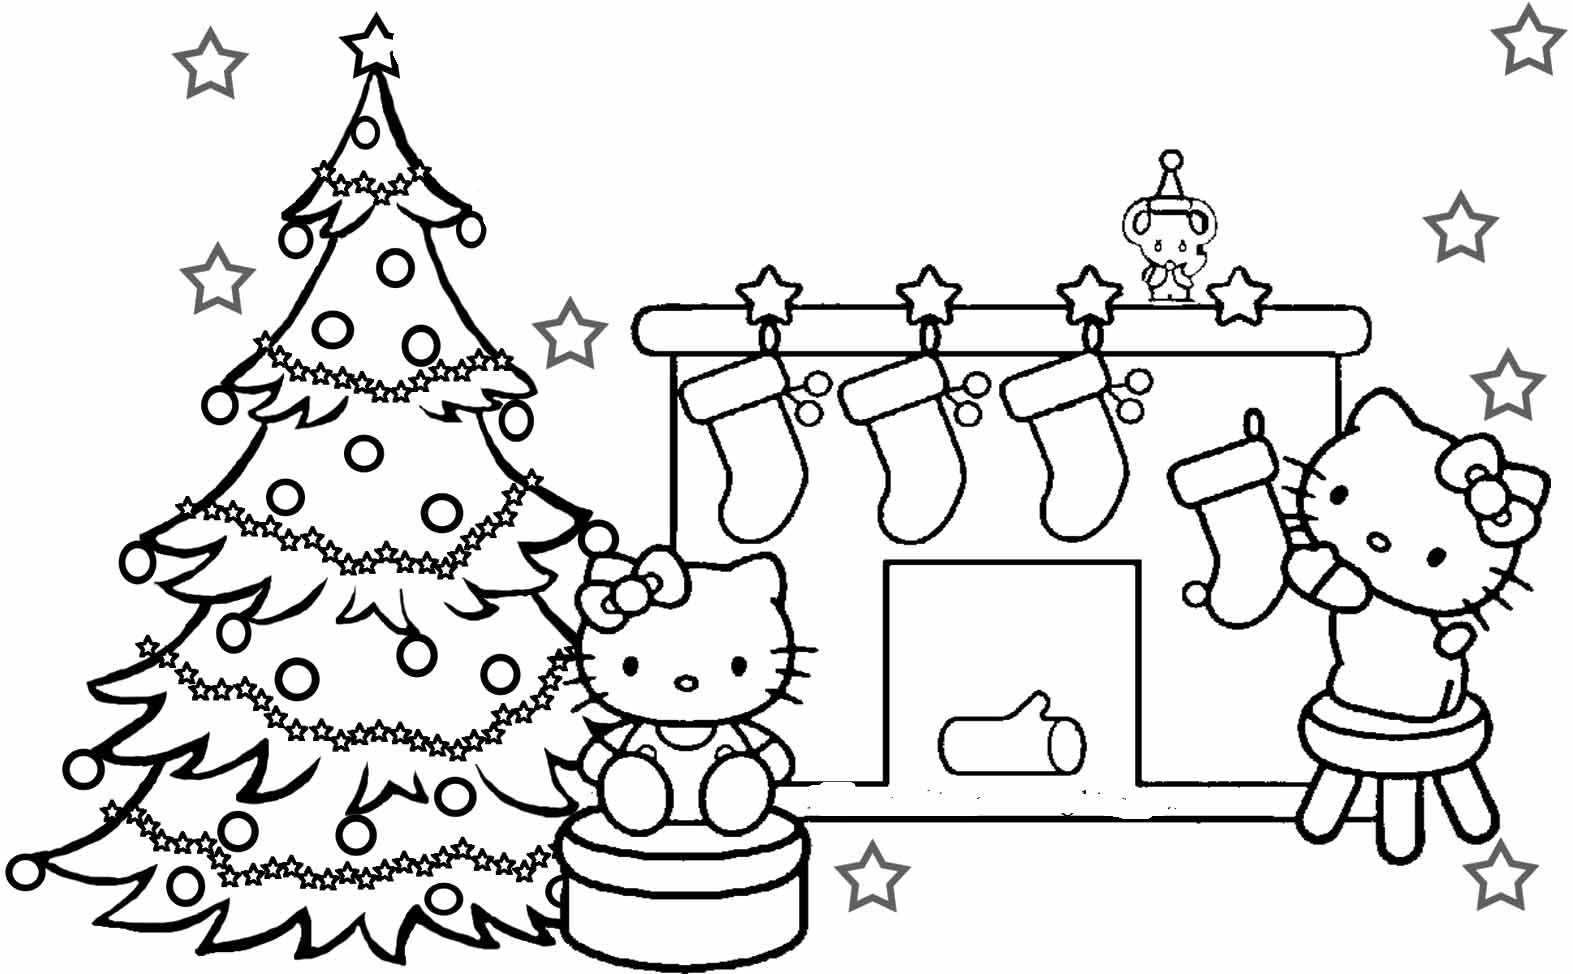 Christmas Coloring Pages For Kids Printable  Christmas Coloring Pages For Kids Printable Coloring Home